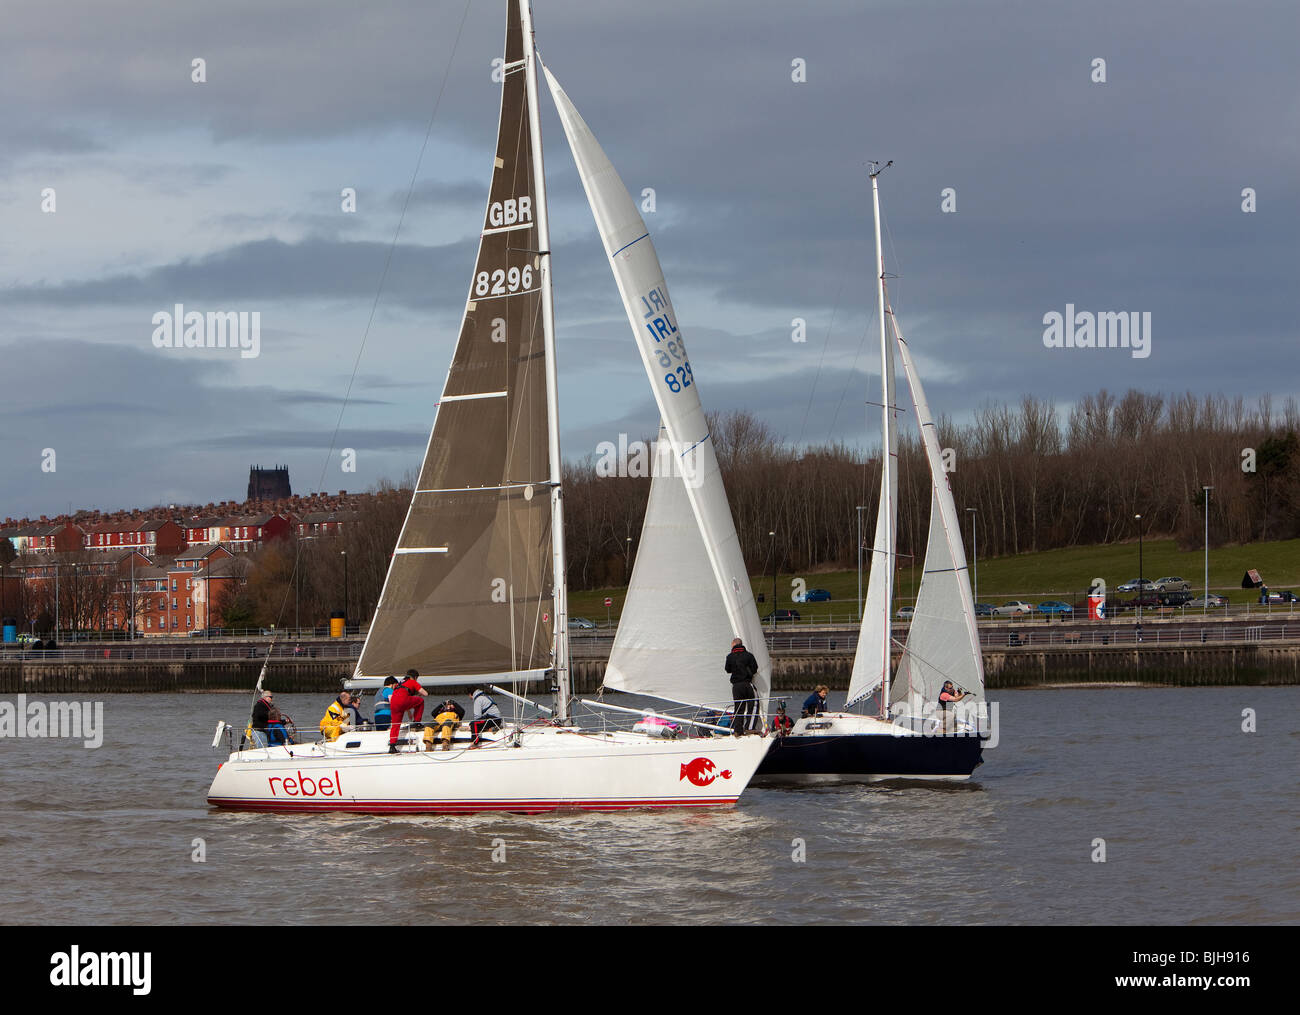 Sailing yachts on River Mersey at Liverpool Yacht Club - Stock Image